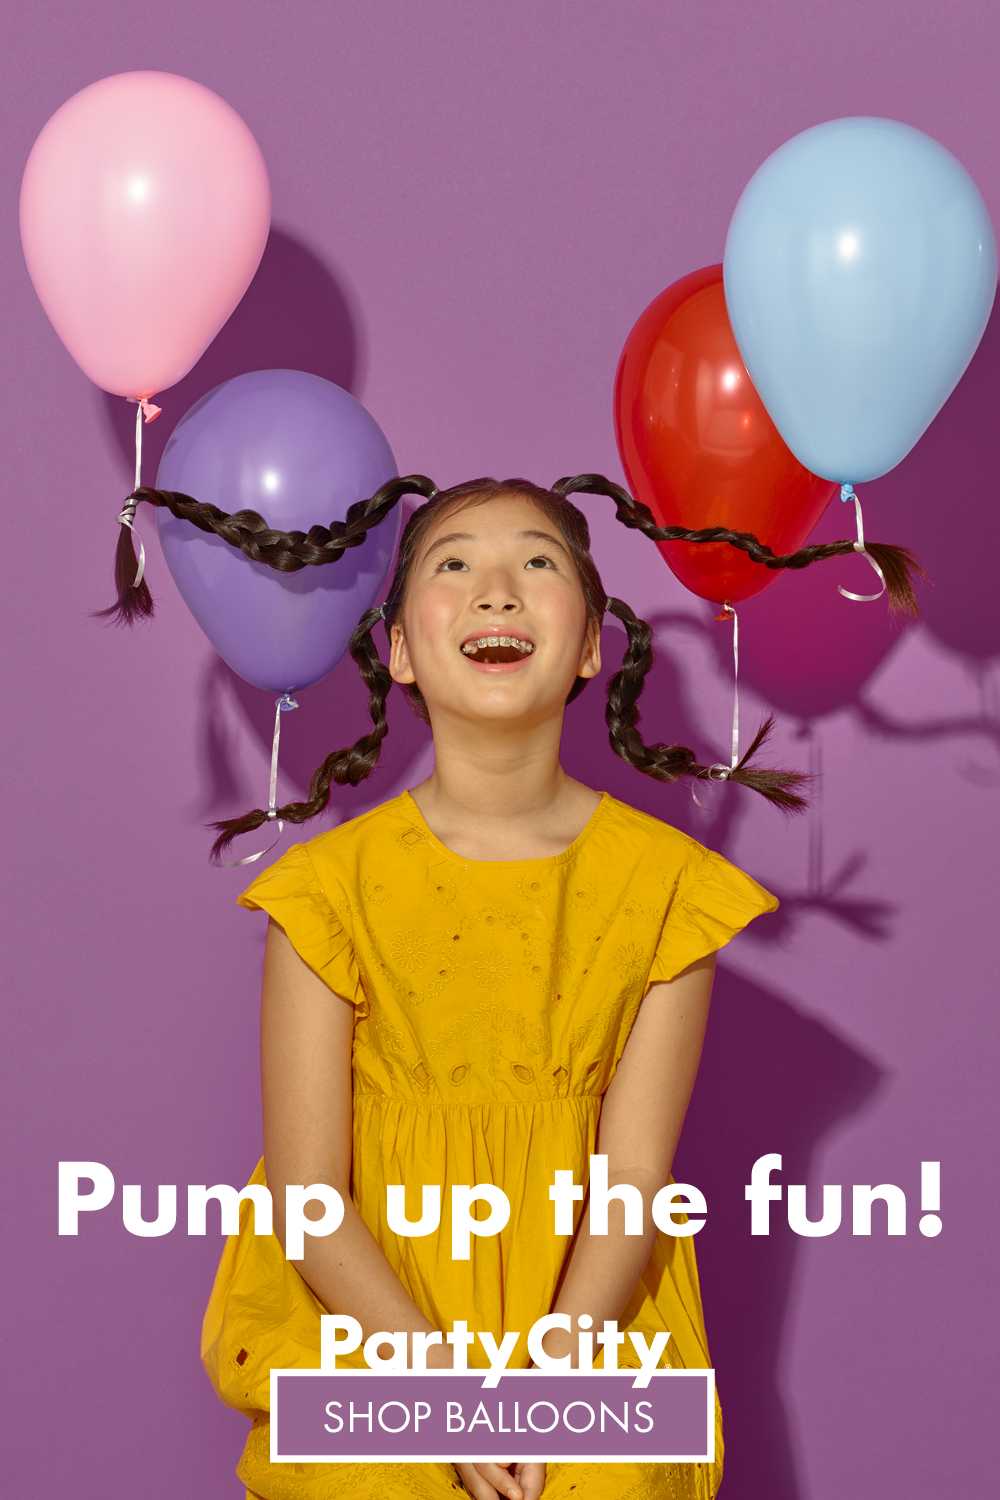 Make Your Party Better With Balloons From Party City Shop In Store Or Order Online For In In 2020 Fun Kids Party Party City Balloons Sunday School Crafts For Kids